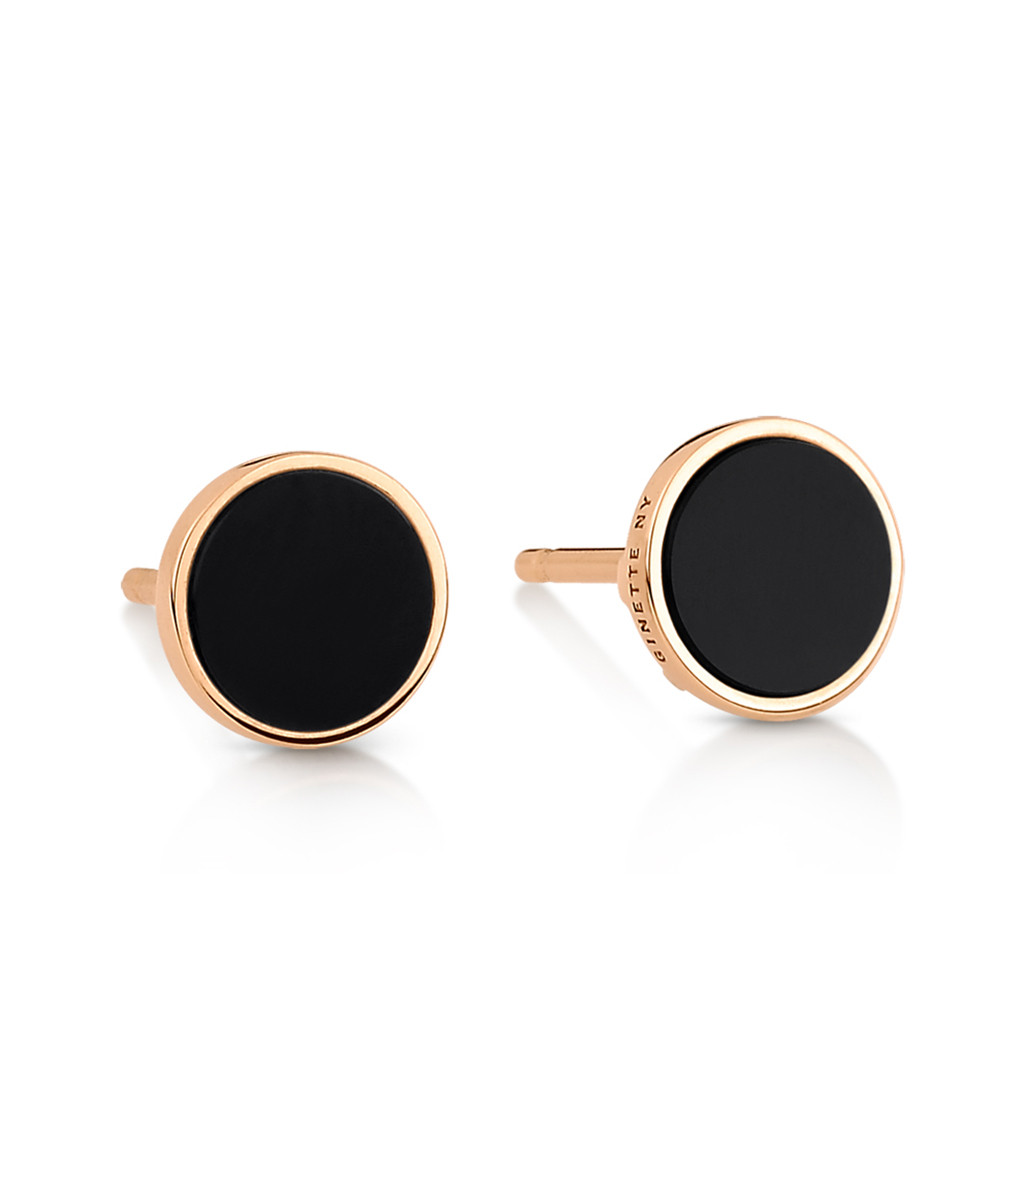 GINETTE NY - Boucles d'oreilles Ever Disc Or Rose Onyx